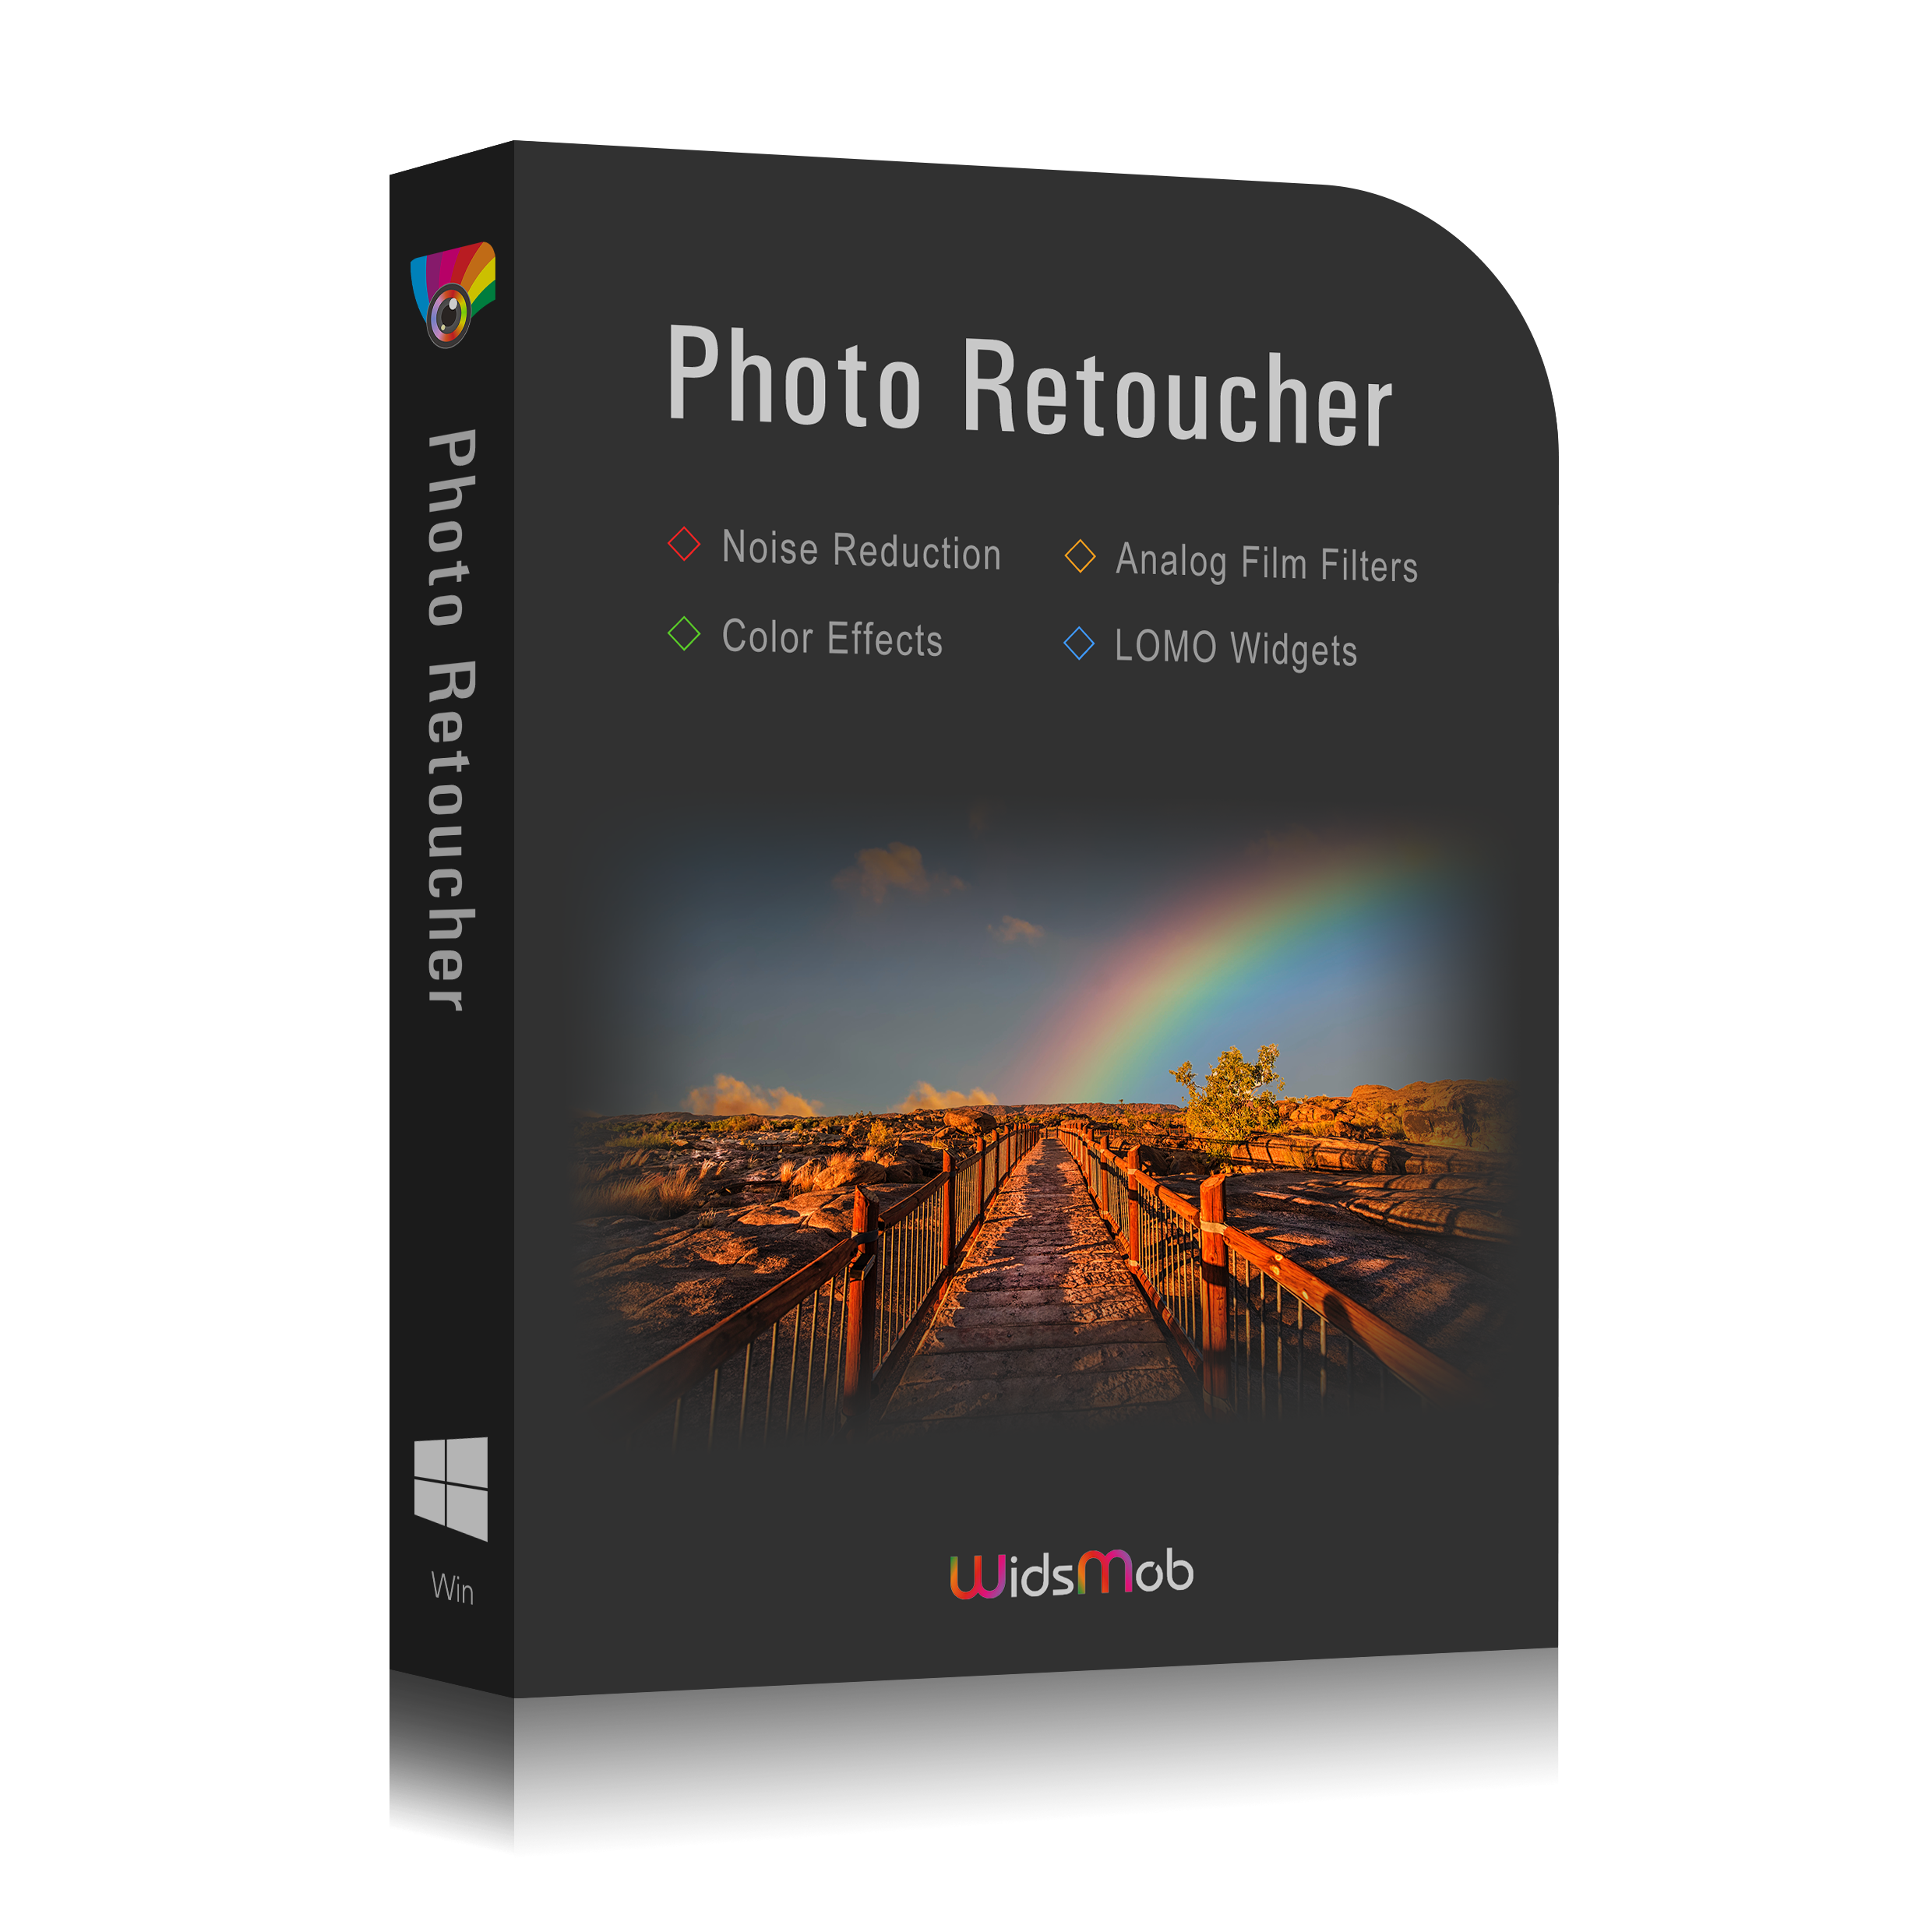 retoucher box win new